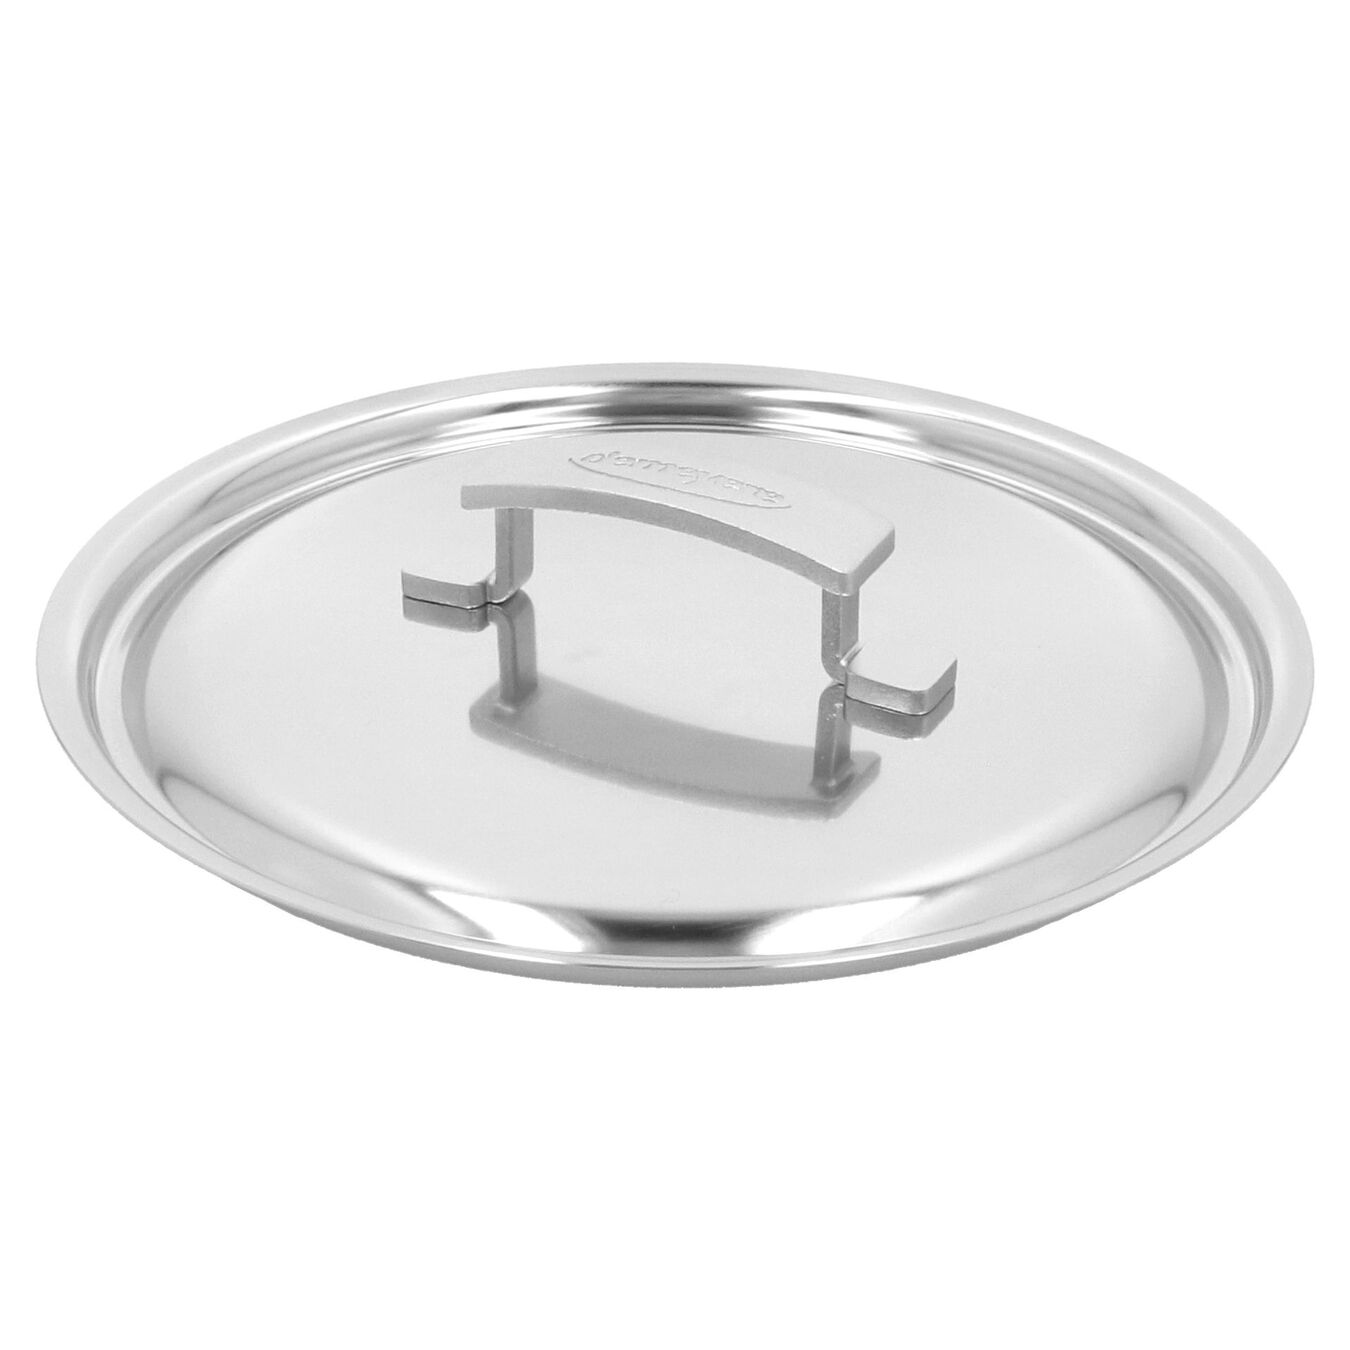 270.5-oz Stock pot with lid, 18/10 Stainless Steel ,,large 5